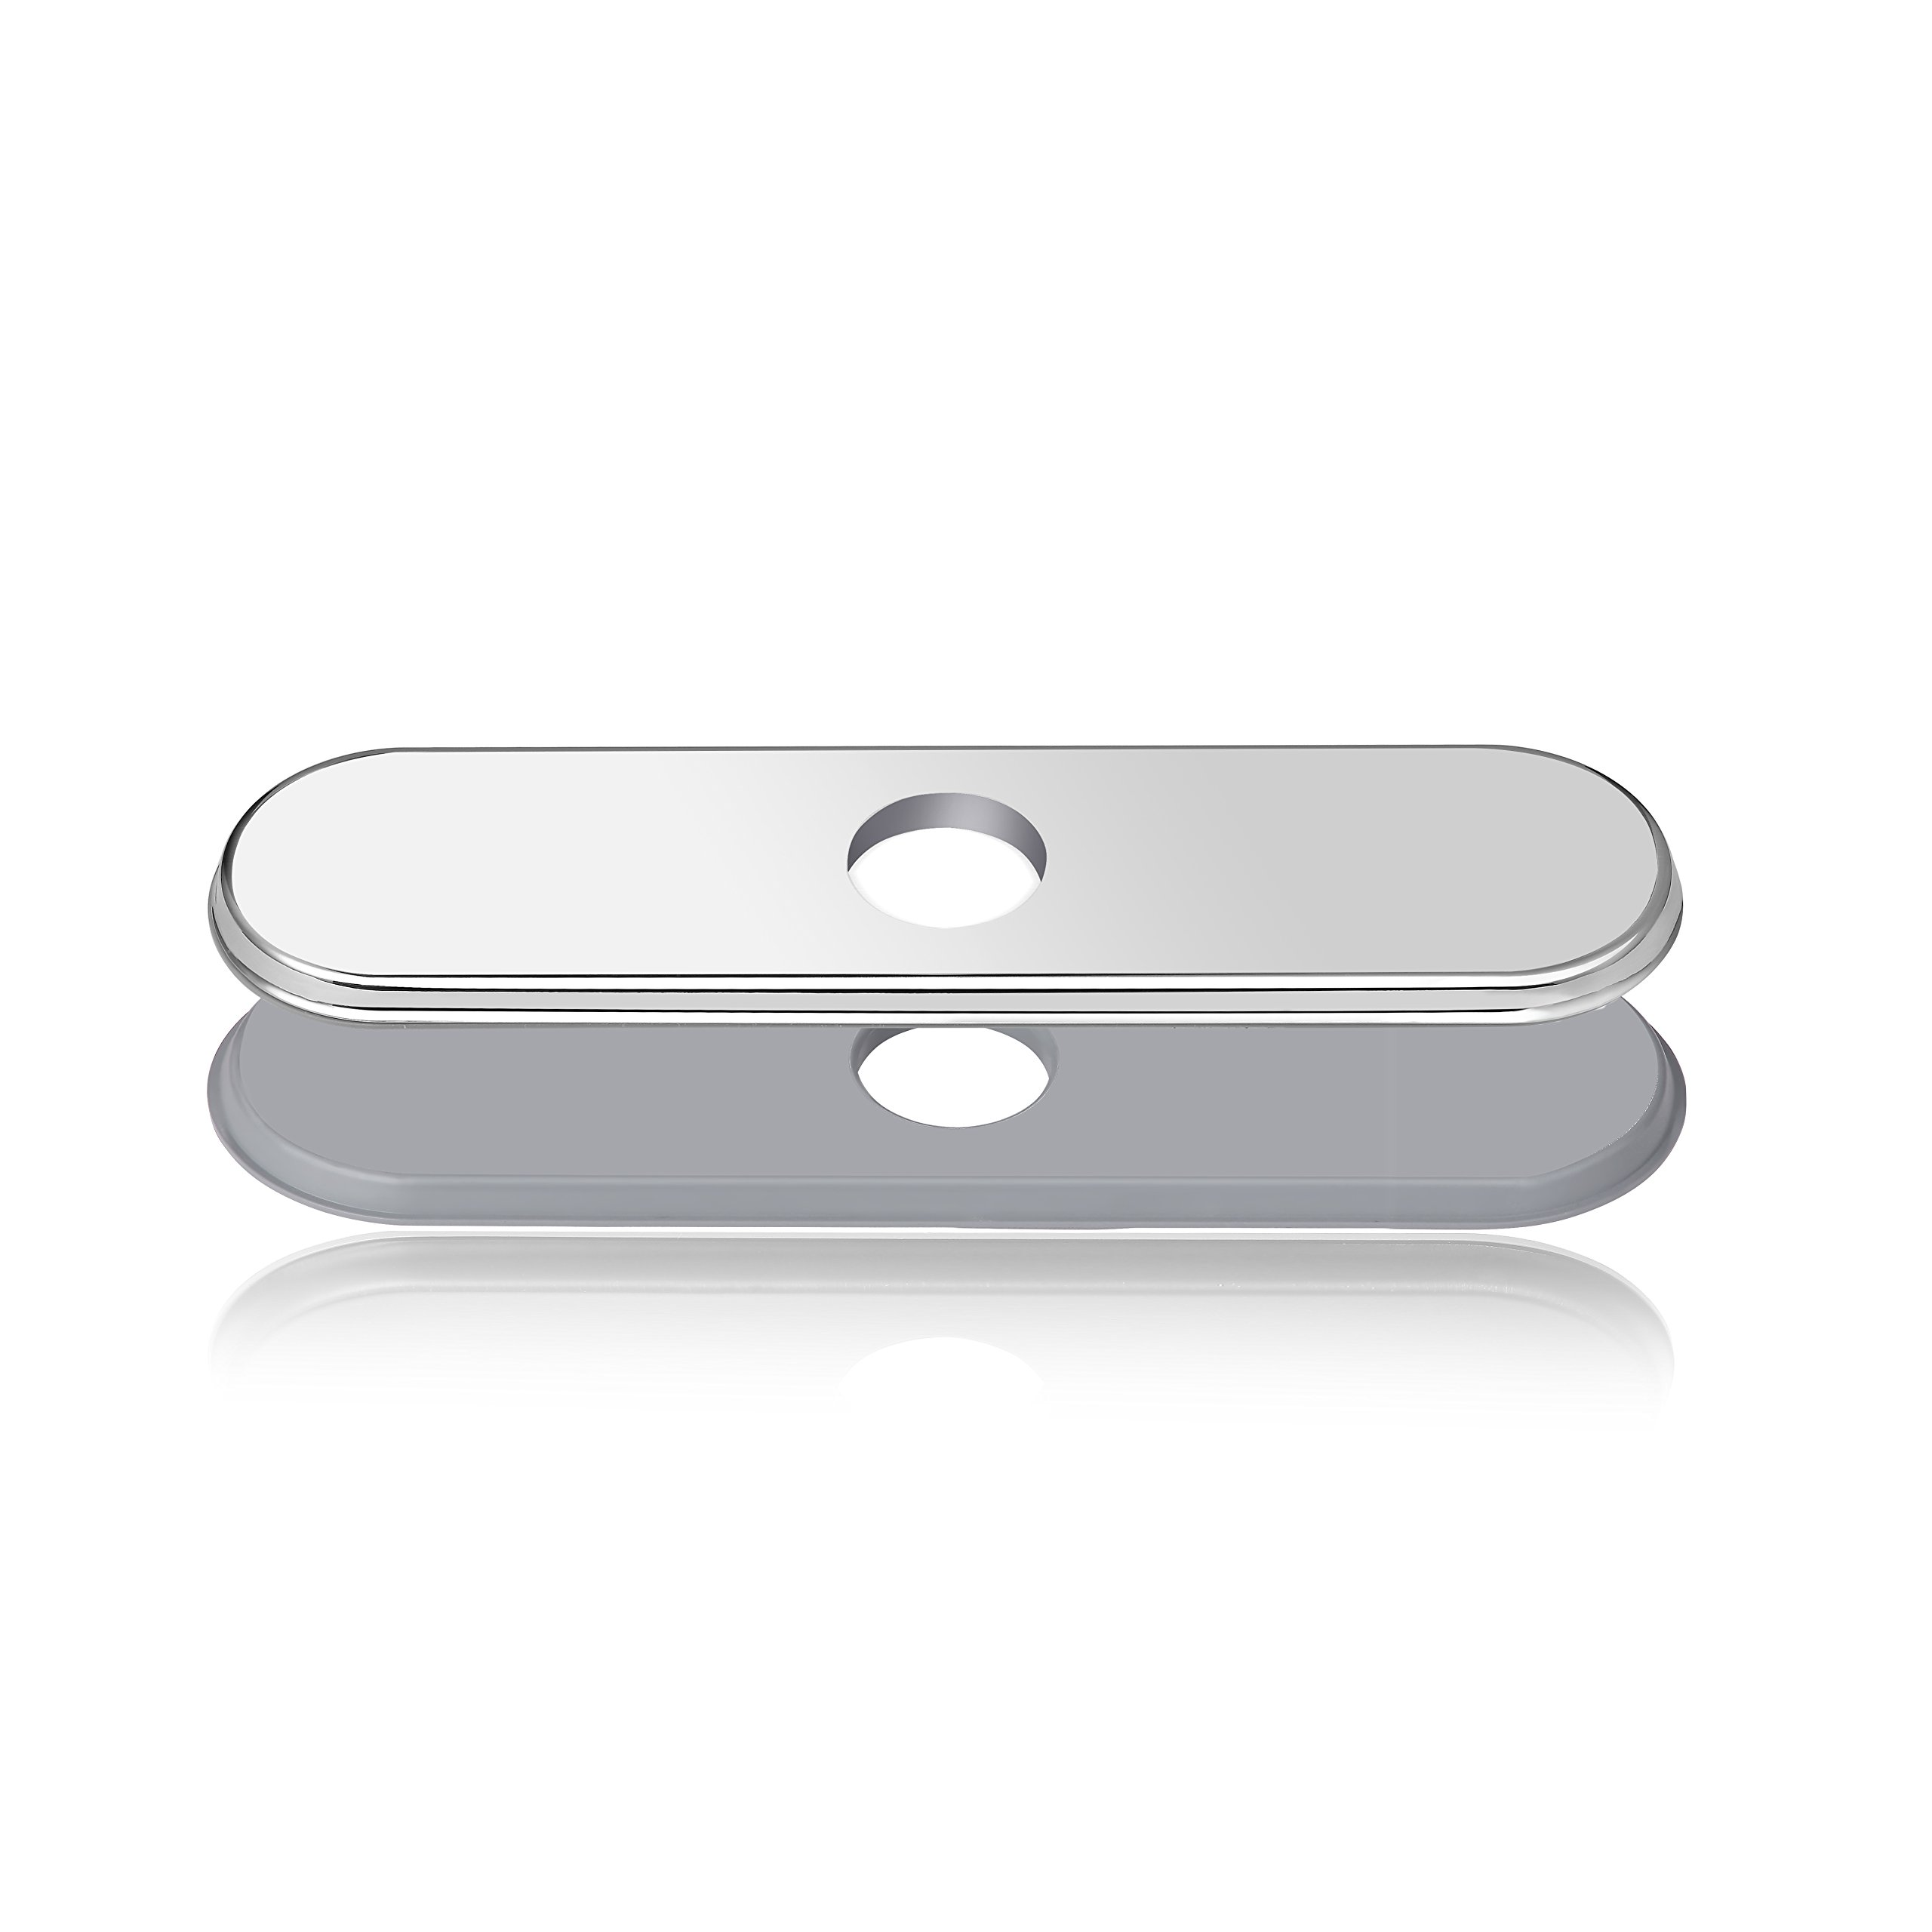 LOUYC Sink Faucet Escutcheon for Bathroom Kitchen Faucet Hole Cover Deck Plate 10 Inches